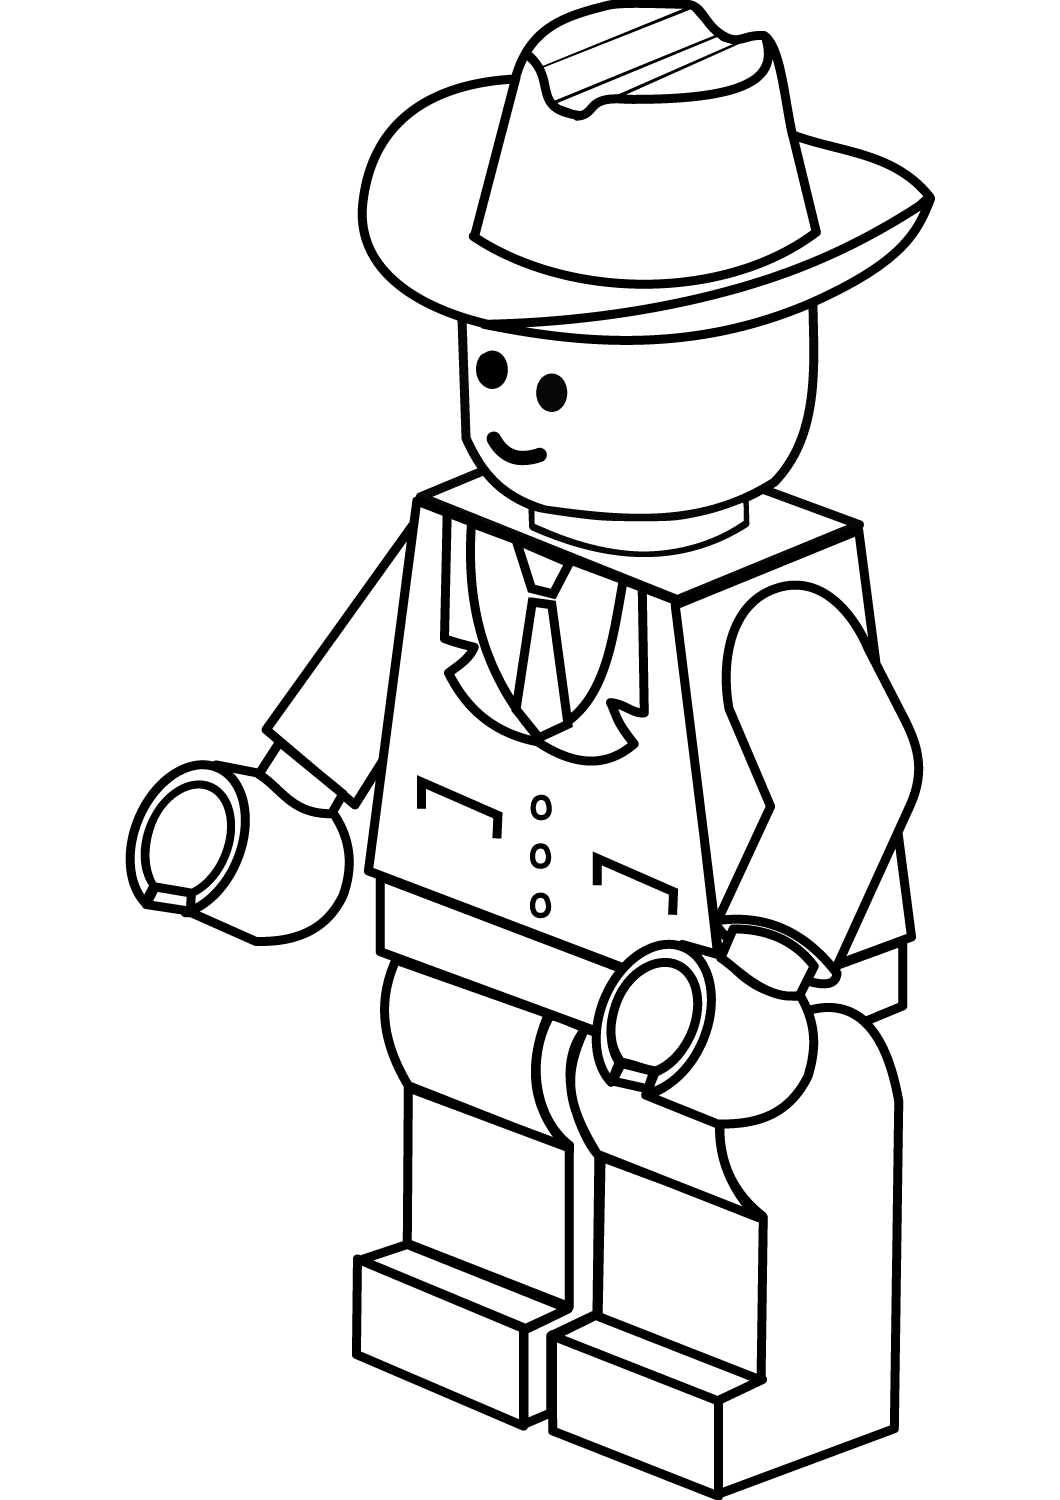 Lego Man Coloring Page for Students and Teacher ...